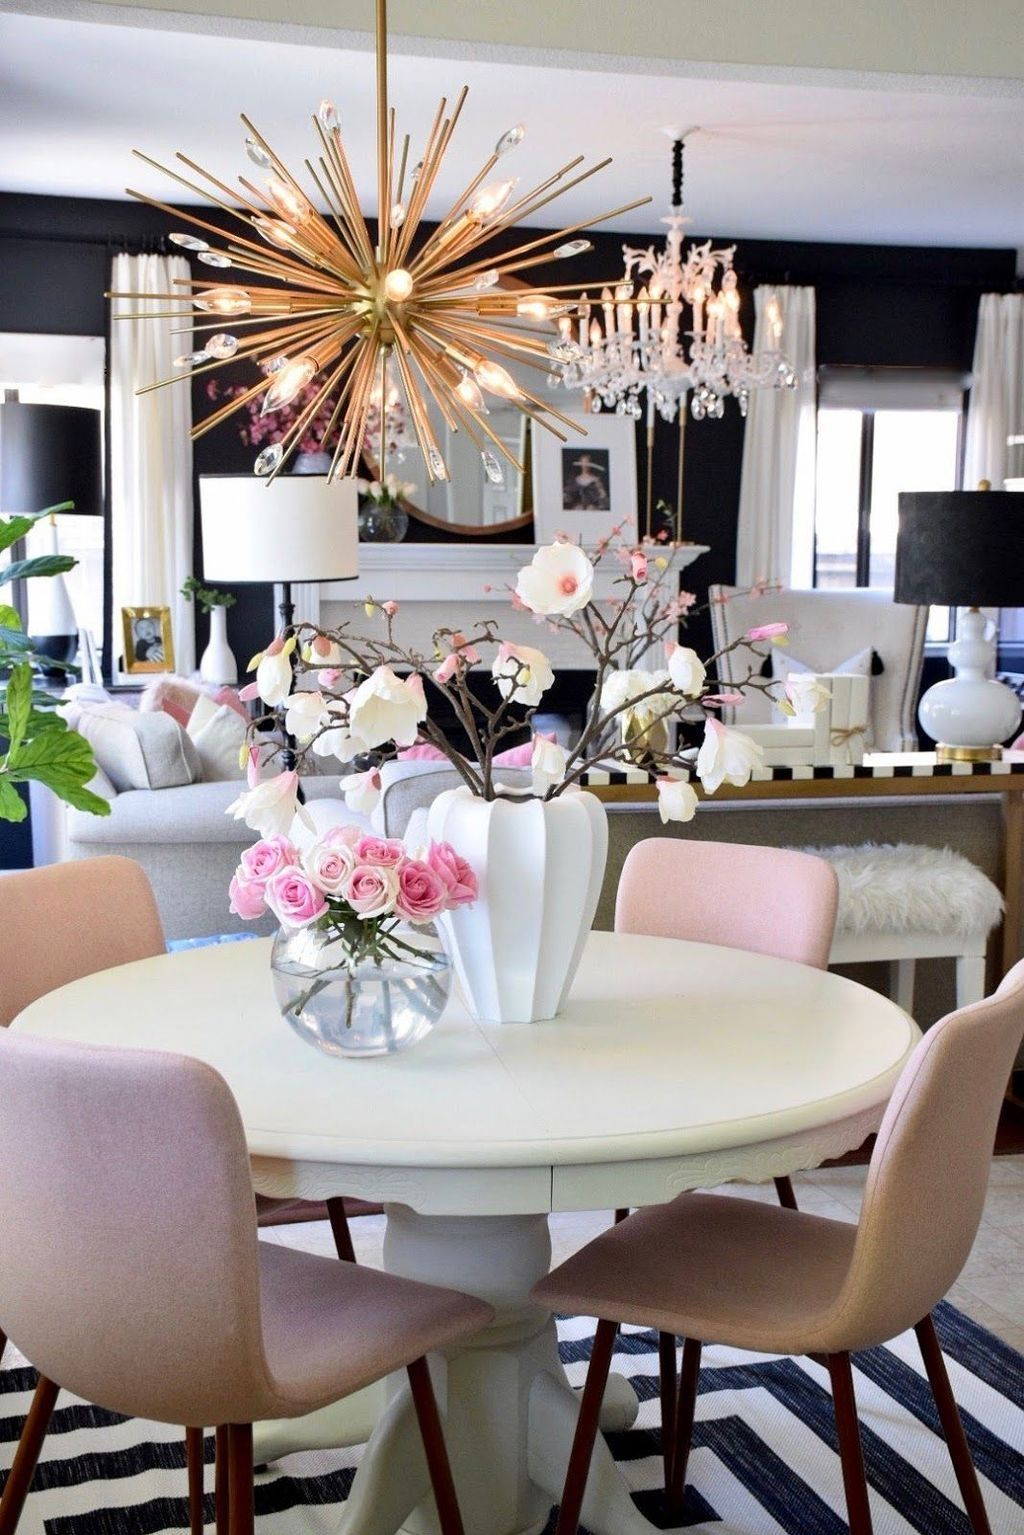 48 Stunning Spring Living Room Decor Ideas To Refresh Your Mind Homyhomee Spring Living Room Spring Living Room Decor Home Decor Spring ideas dinning room